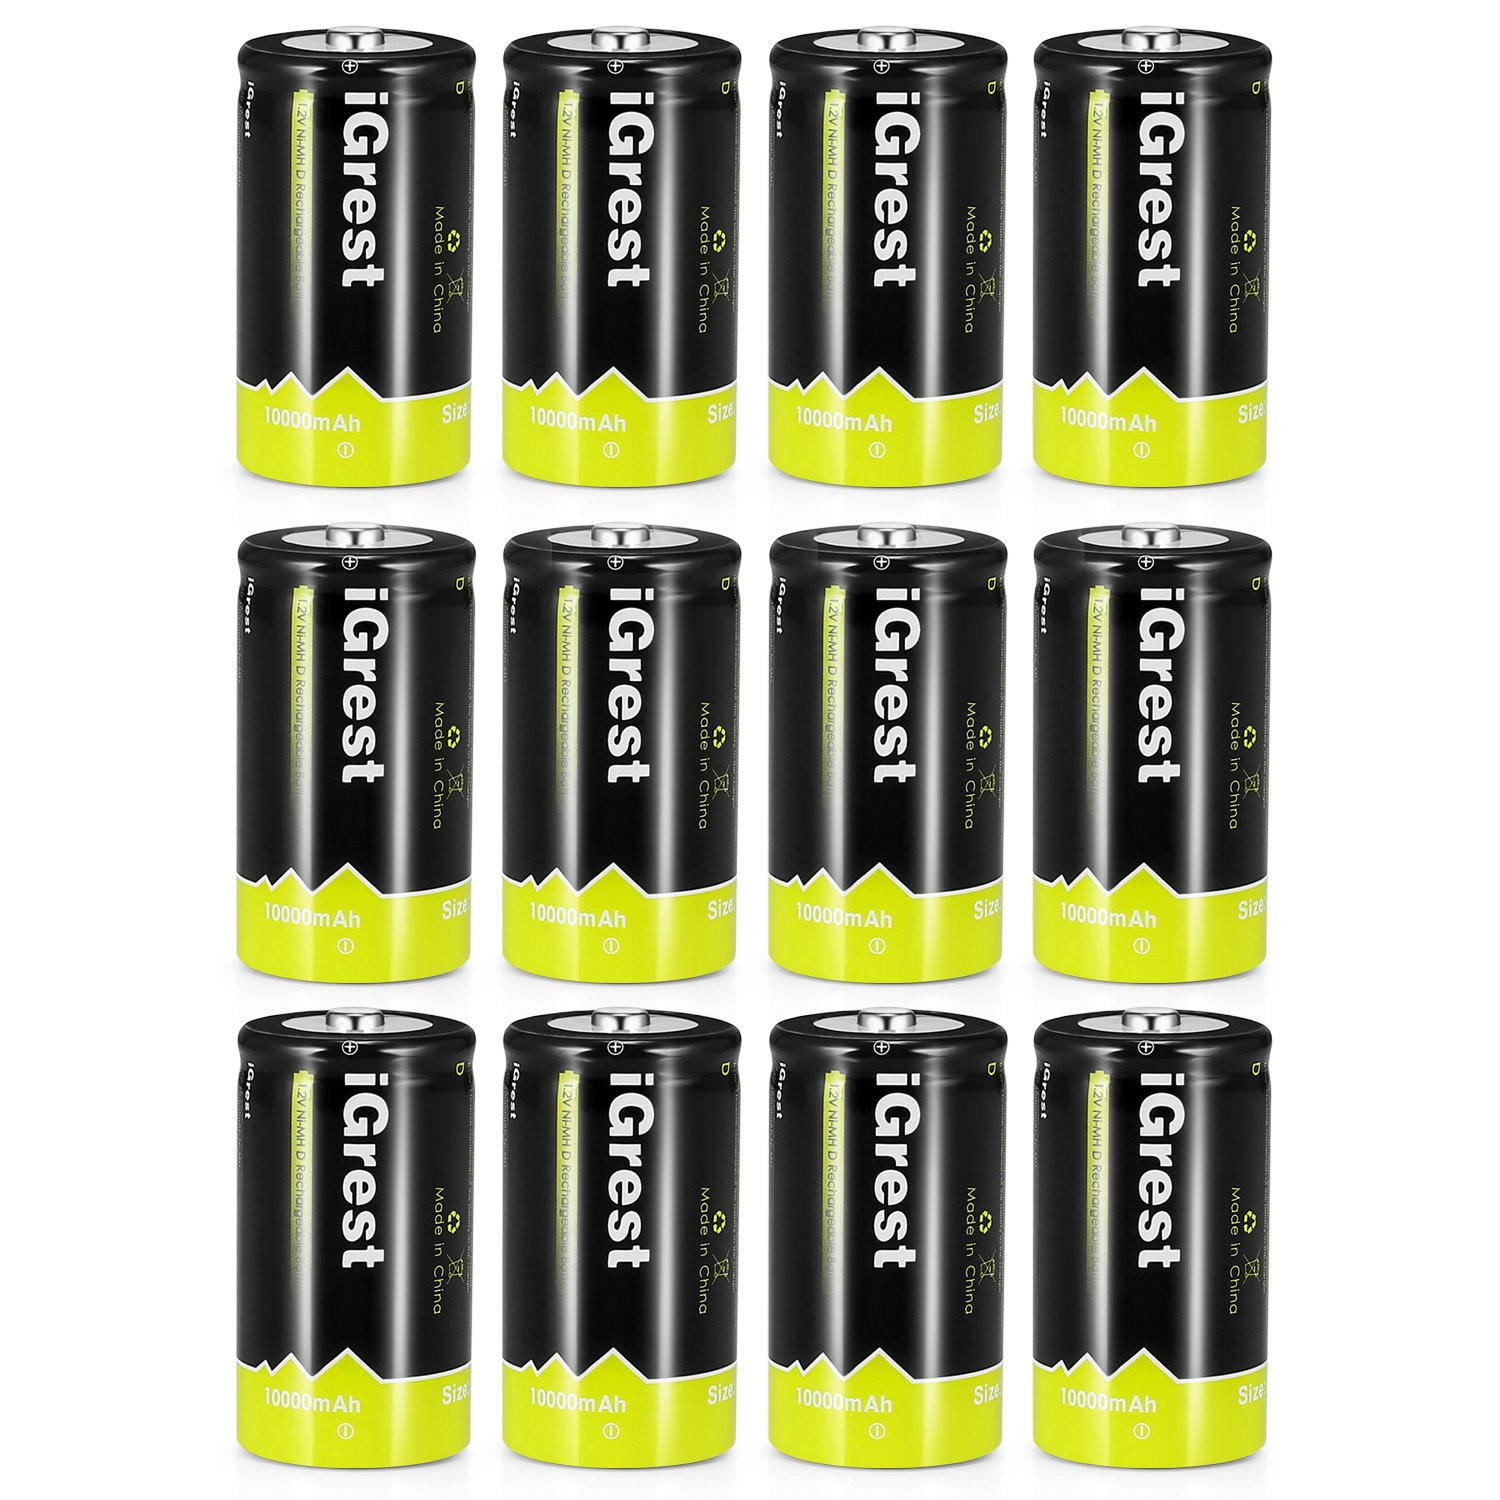 iGrest Rechargeable D Batteries 10000mAh Ni-MH D Size Cell Battery with Box (12 Pack)